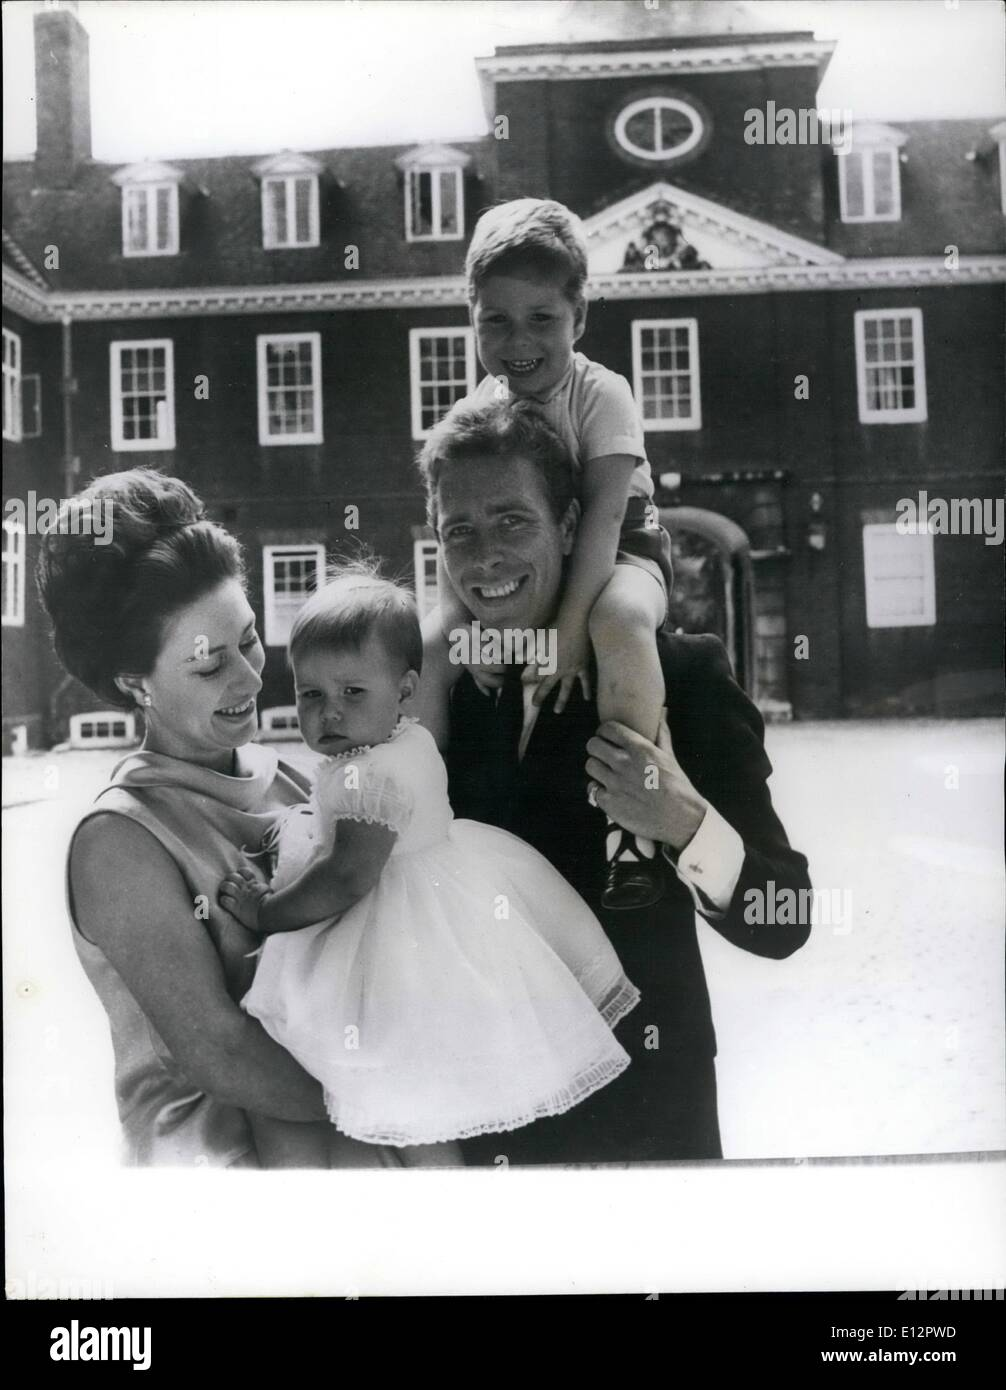 Feb. 24, 2012 - A new picture of Princess Margaret, the Earl of Snowdon and their children: A happy study of H.R.H. Princess Margaret with her husband the Earl of Snowdon and their two children taken in the Clock Court of Kensington Palace, London. Lady Sarah who is wearing a dress of white organdie, trimmed with white lace, was born on May 1st. 1964. Lord Linley (on his father's shoulders) was born on November 3rd,1961. - Stock Image